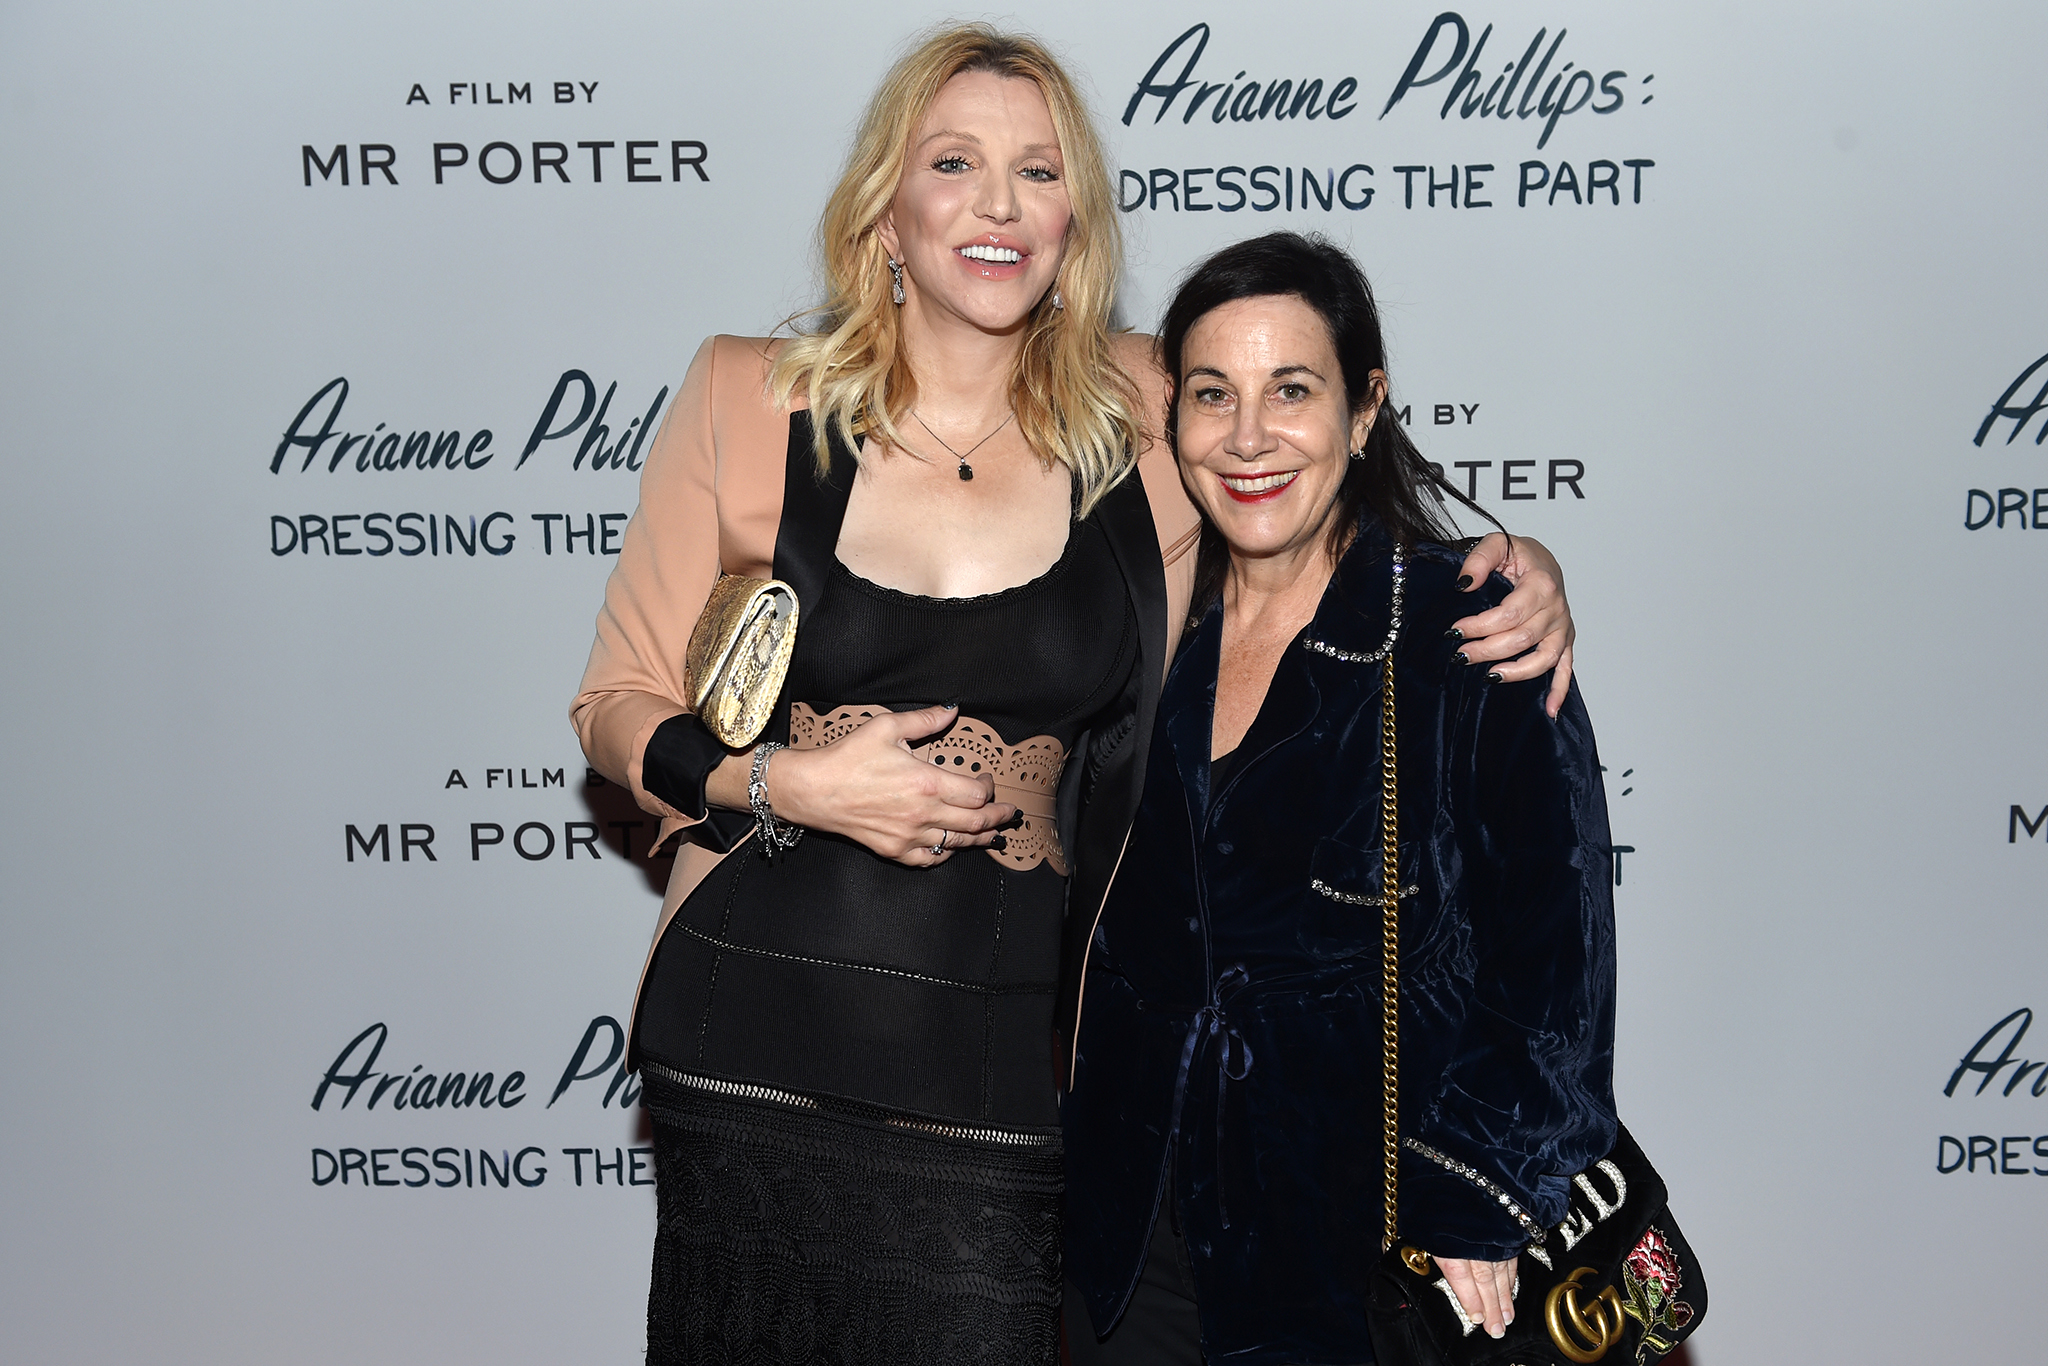 Courtney Love and Arianne PhillipsArianne Phillips: Dressing the Part, Spring Summer 2018, New York Fashion Week, USA - 07 Sep 2017